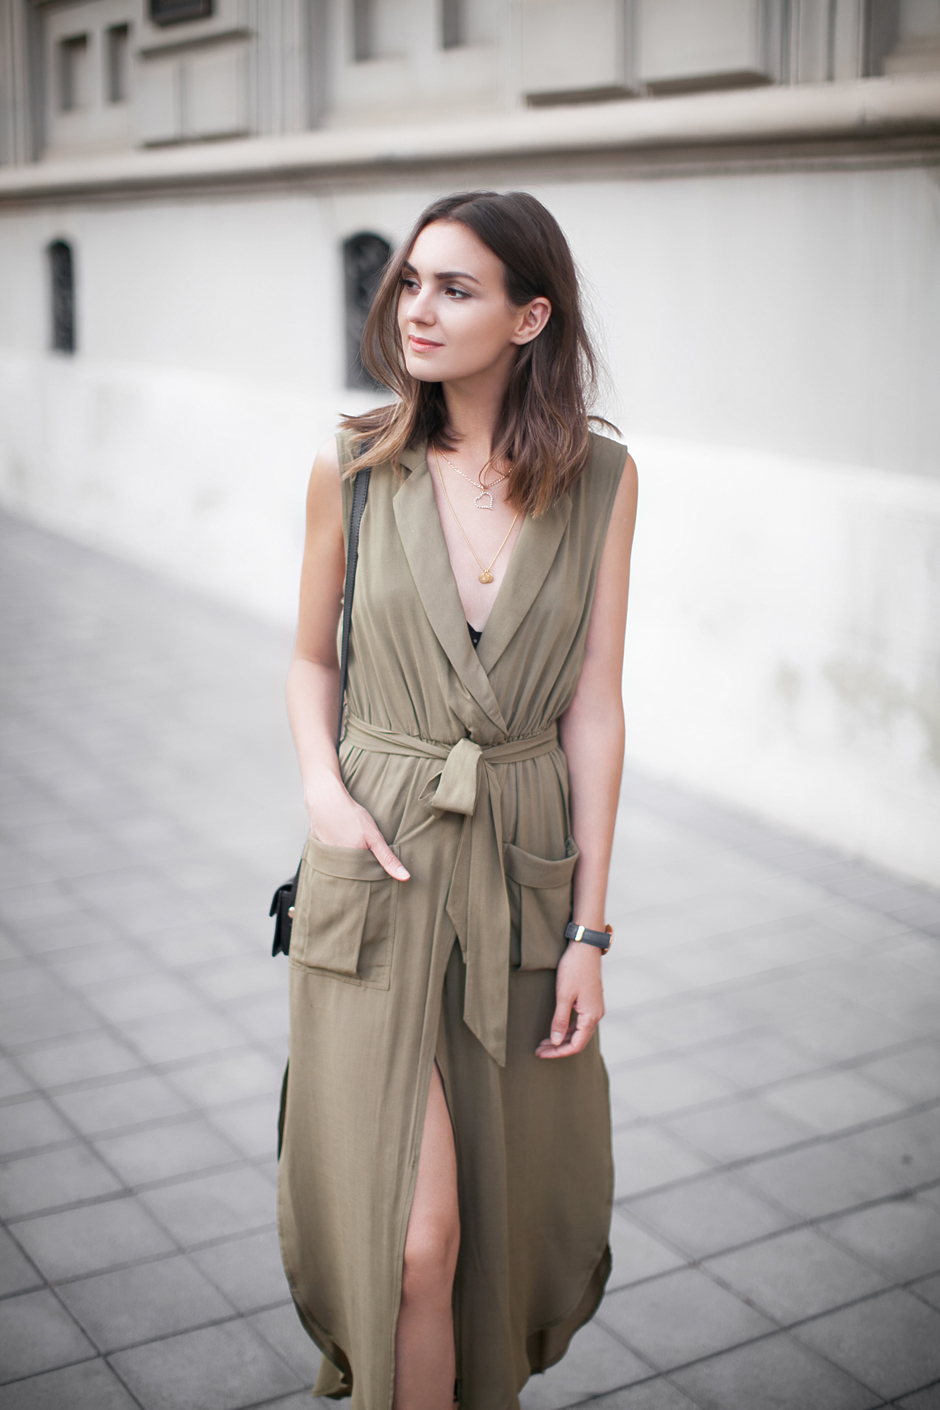 olive-green-dress-street-style-outfit-ideas